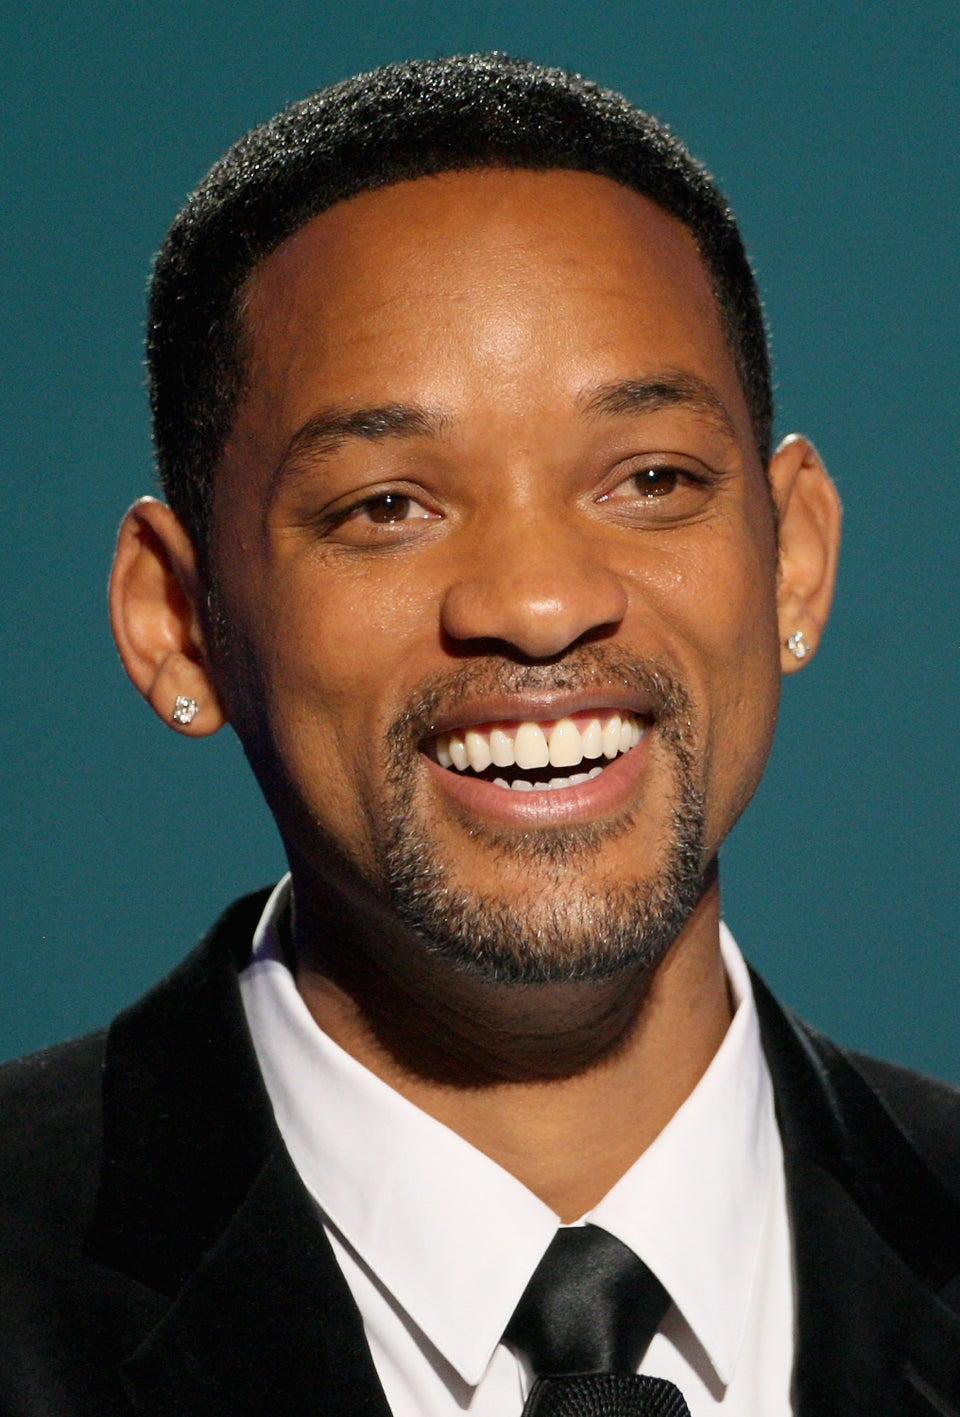 Coffee Talk: Will Smith Says He's the 'Natural Choice' to Play Obama